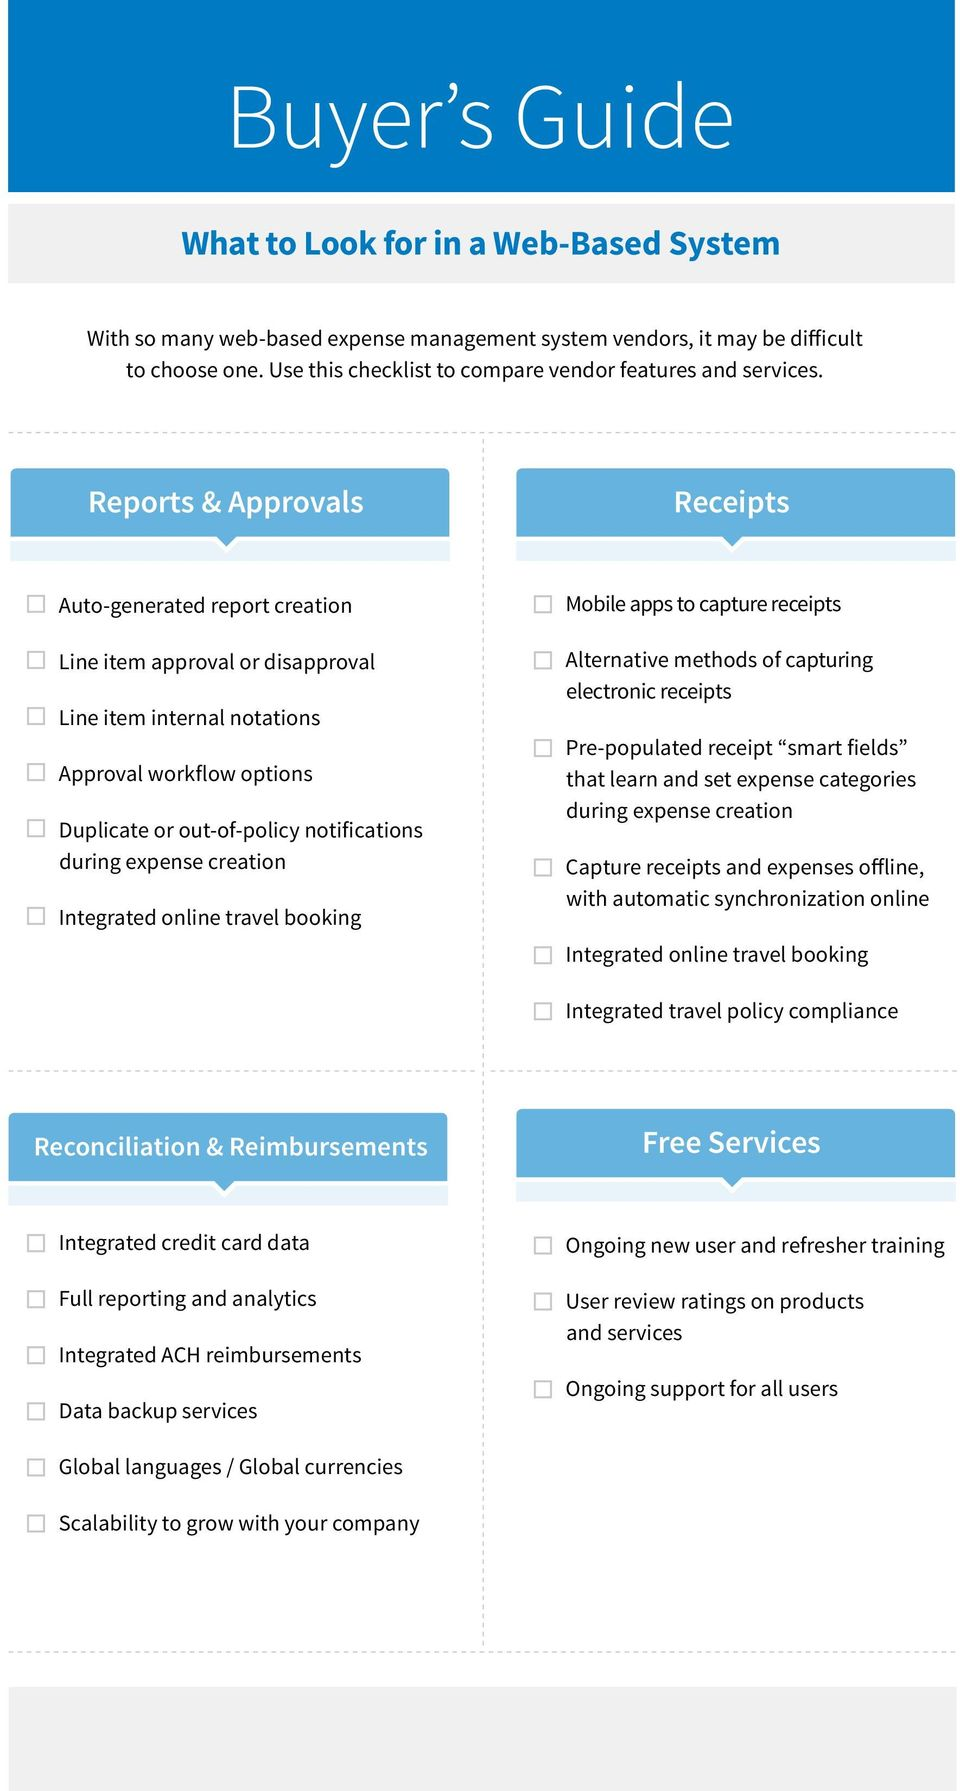 Reports & Approvals Receipts Auto-generated report creation Line item approval or disapproval Line item internal notations Approval workflow options Duplicate or out-of-policy notifications during